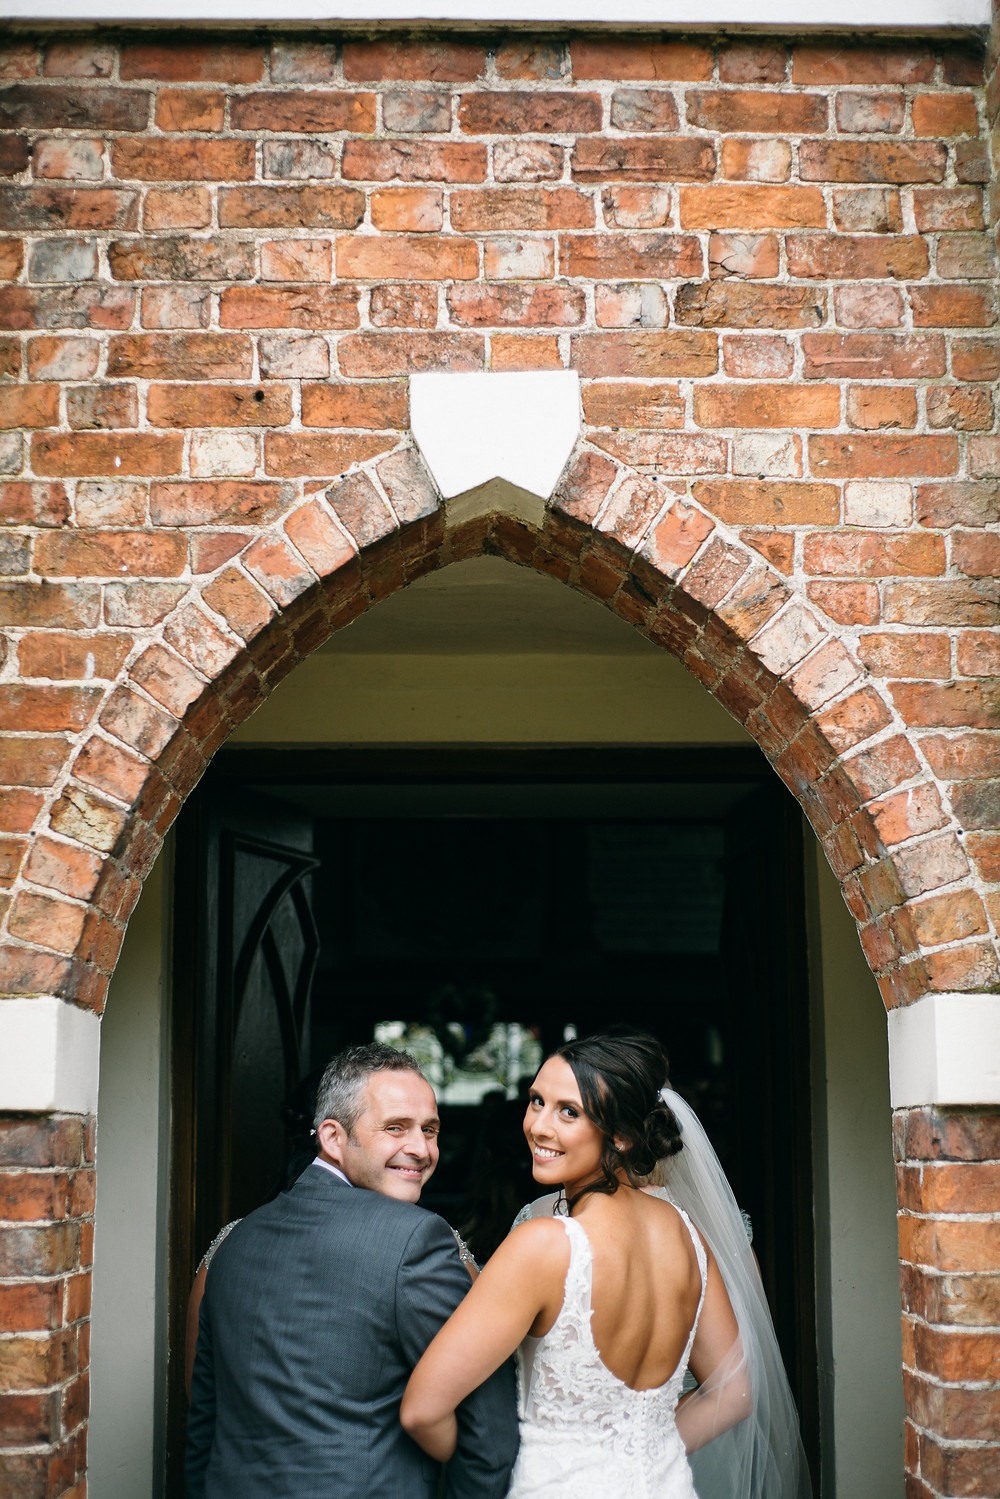 epps photography, dorfold hall wedding photographer